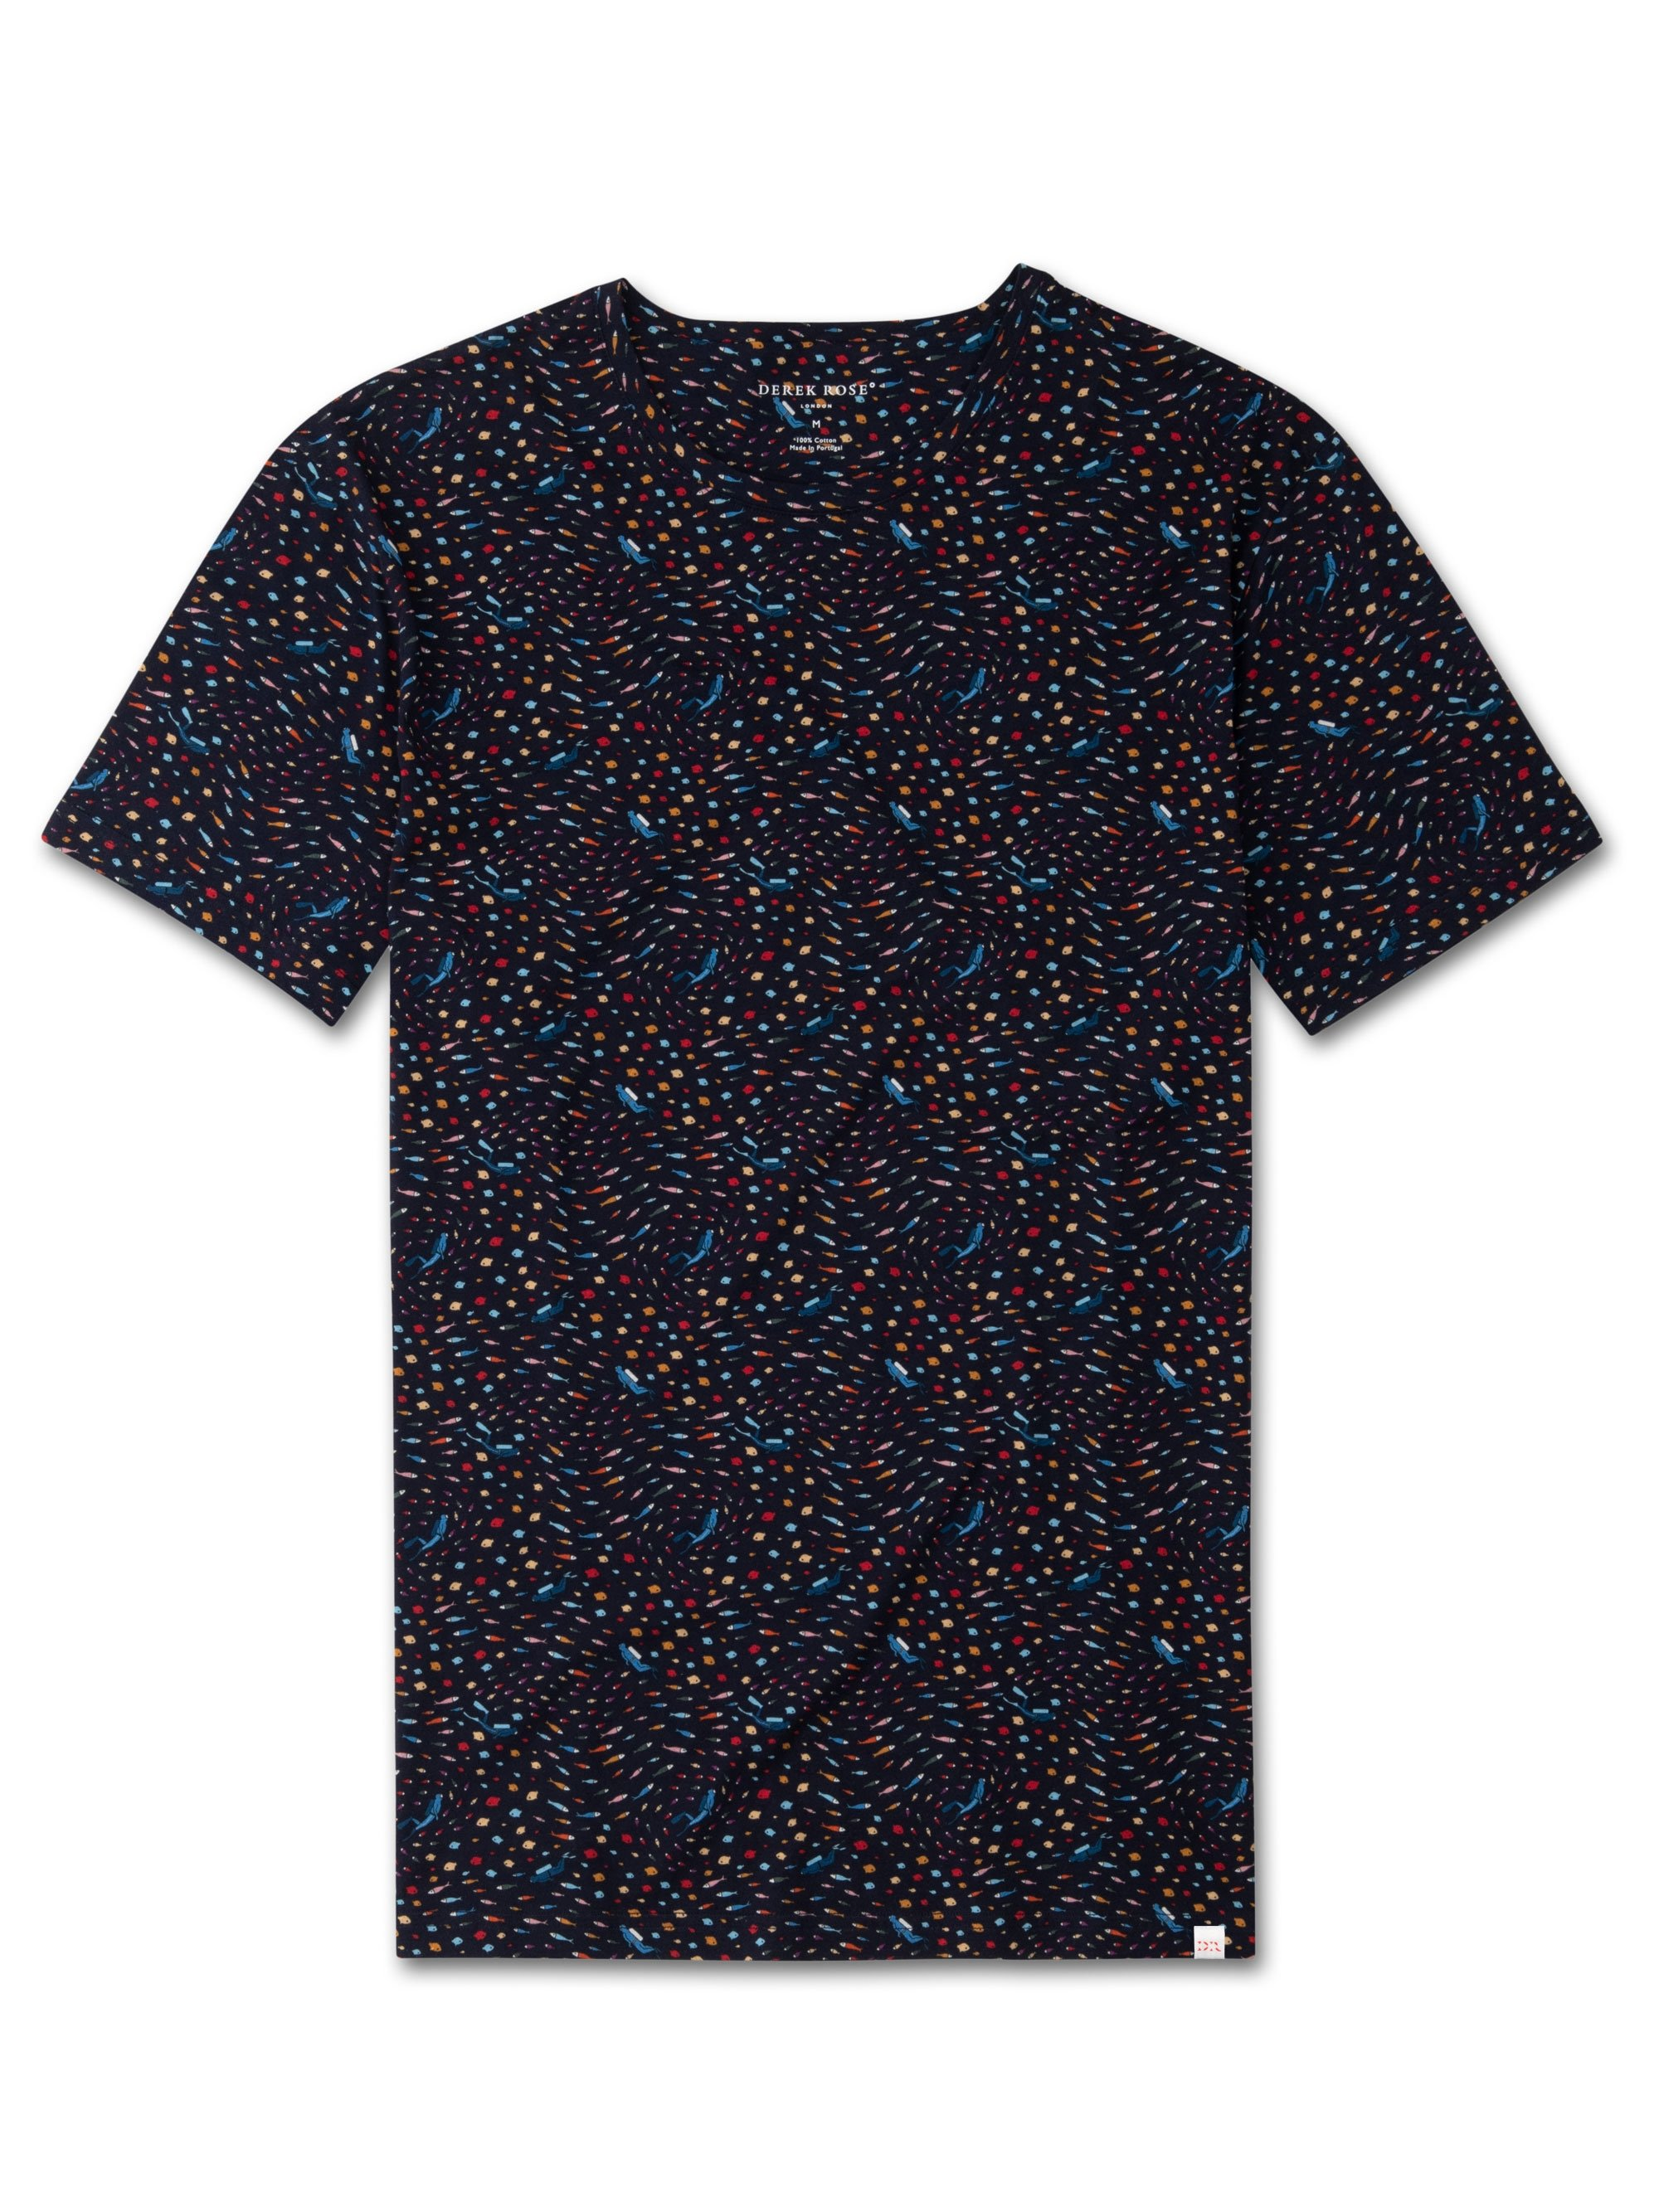 Men's Short Sleeve T-Shirt Robin 2 Carbon-Brushed Cotton Navy